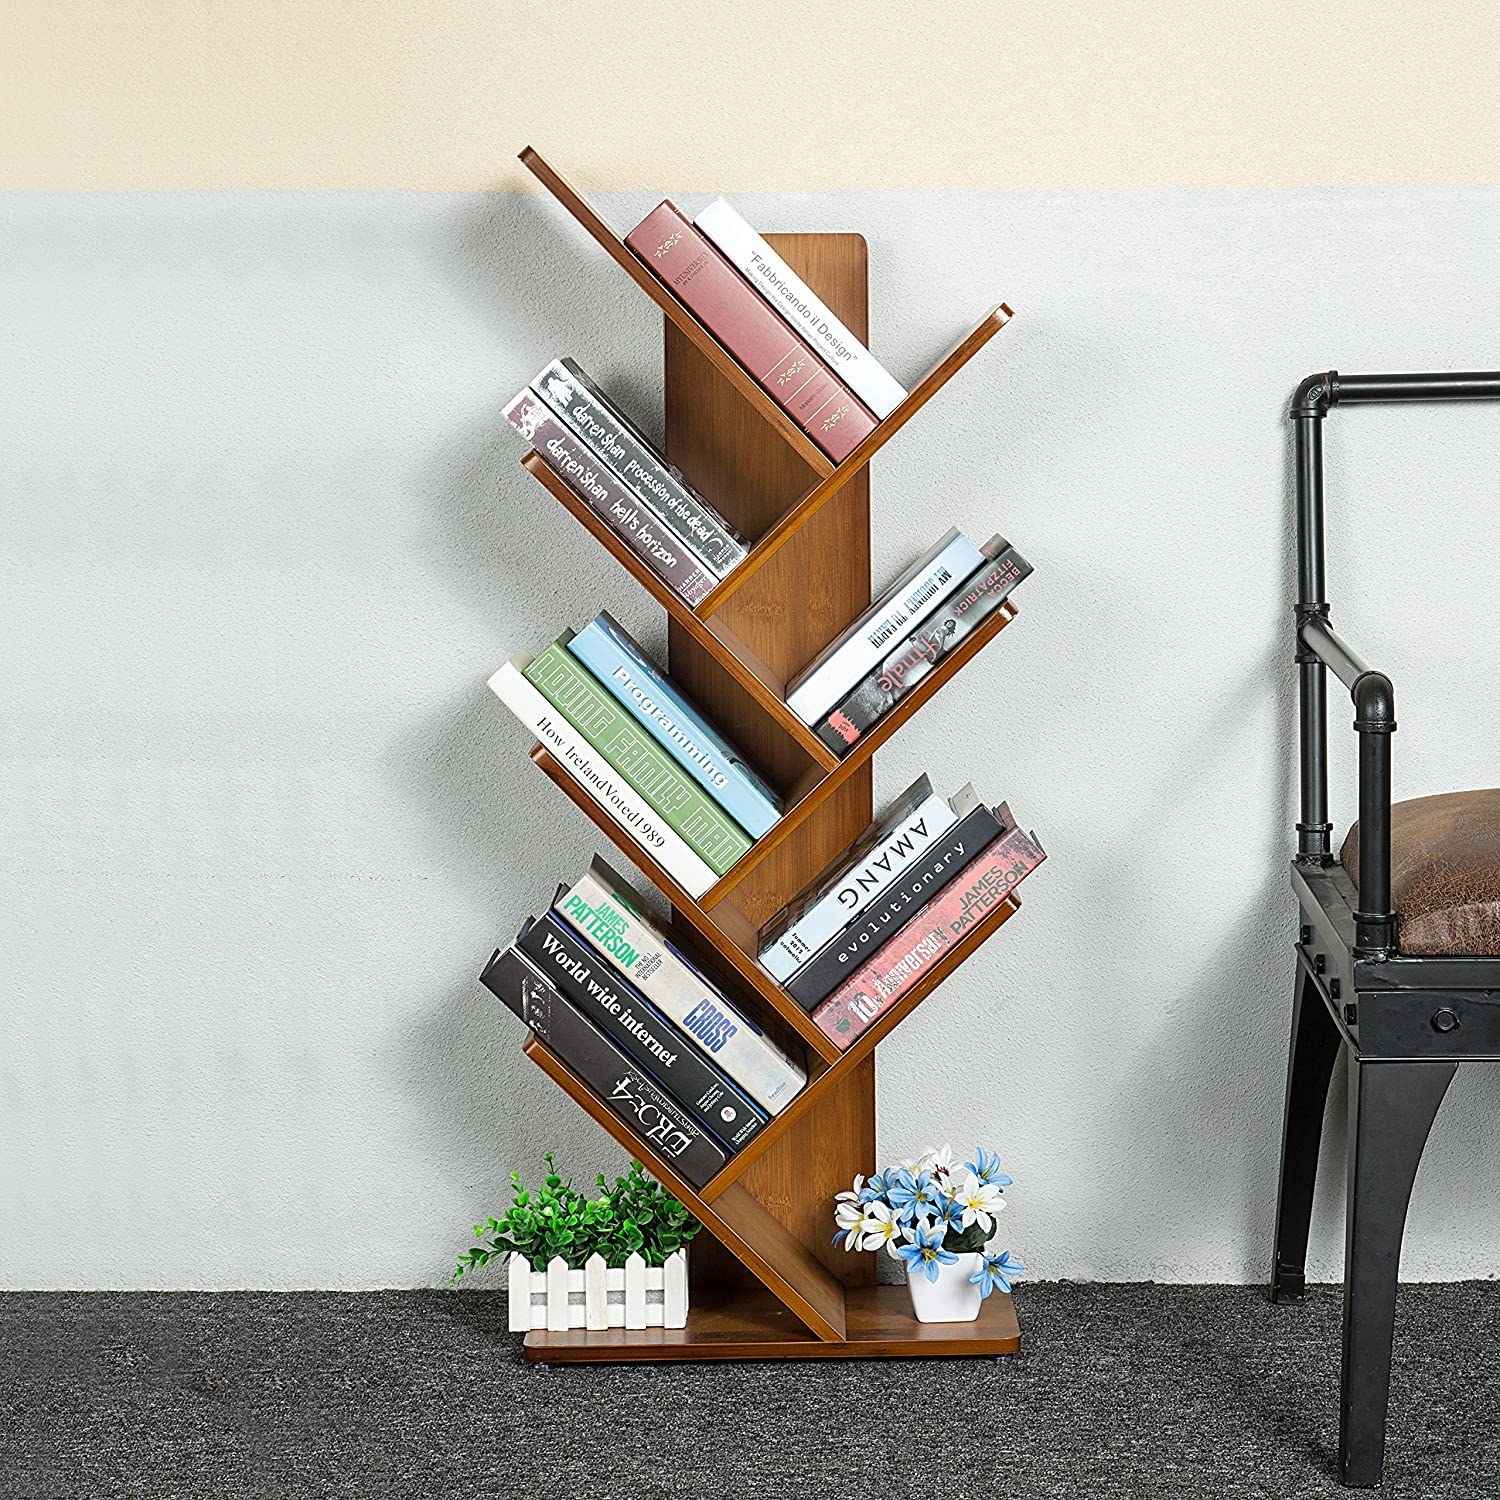 holder judd iron img by connecticut for sliding shelf in book rack manufacturing made company cast products